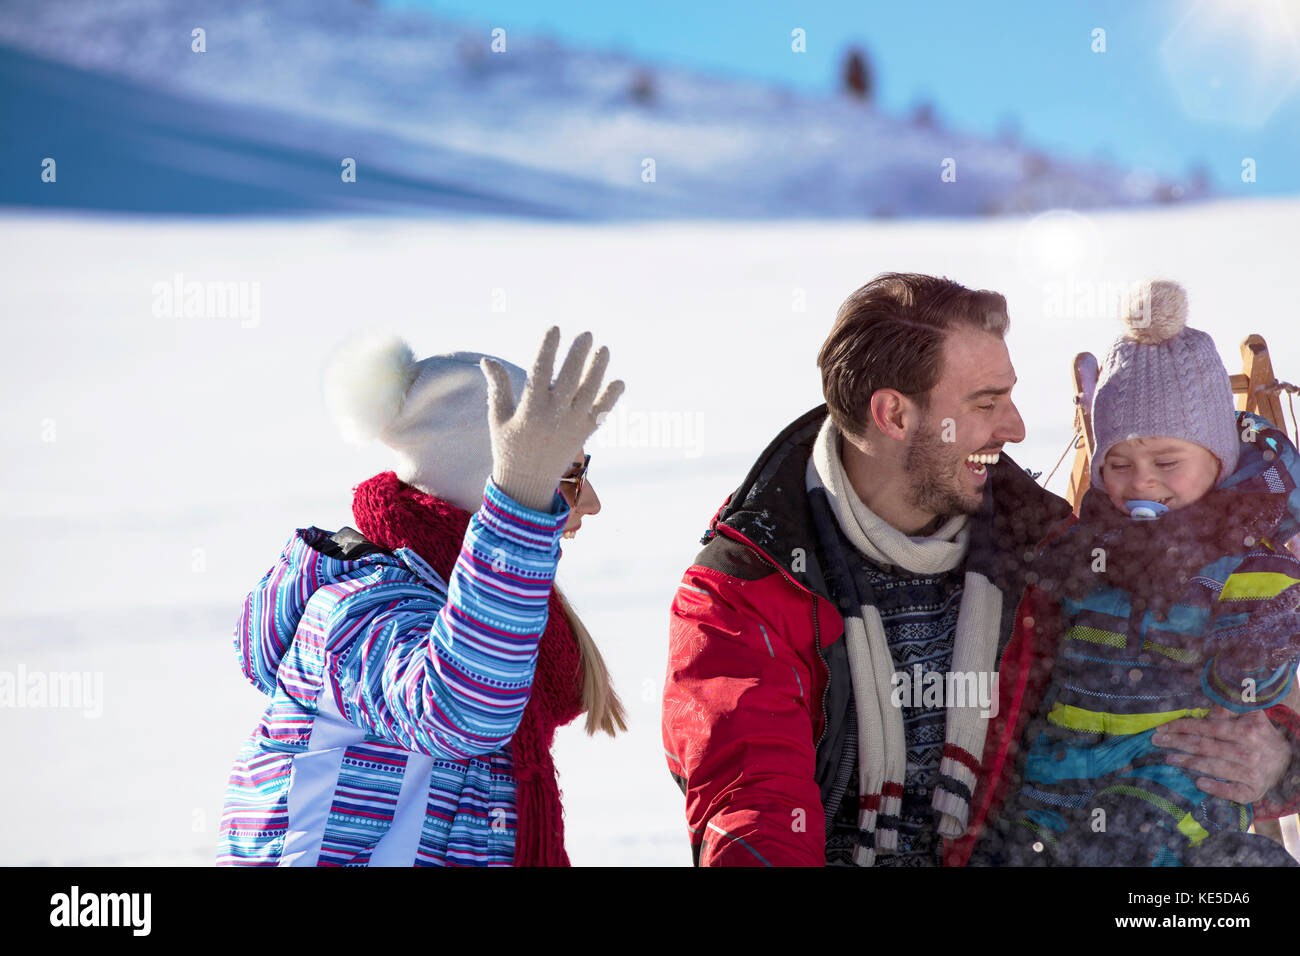 the happy family rides the sledge in the winter wood, cheerful winter entertainments - Stock Image